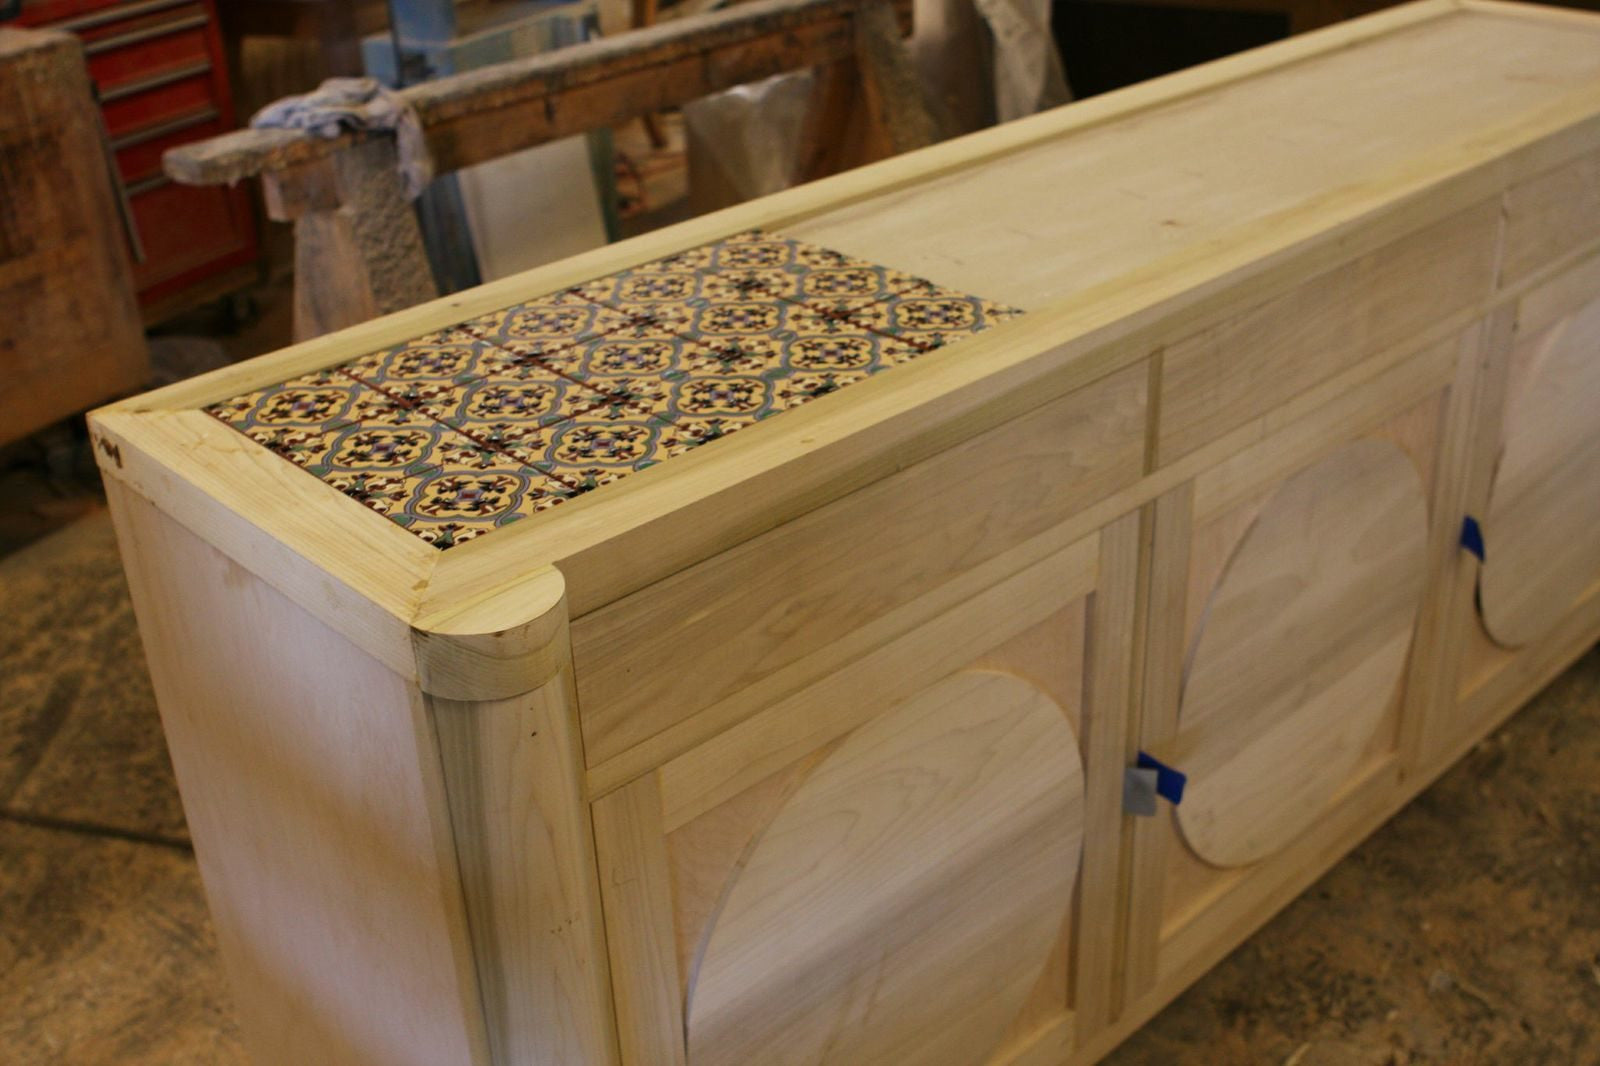 Tiling a Custom Dining Room Cabinet